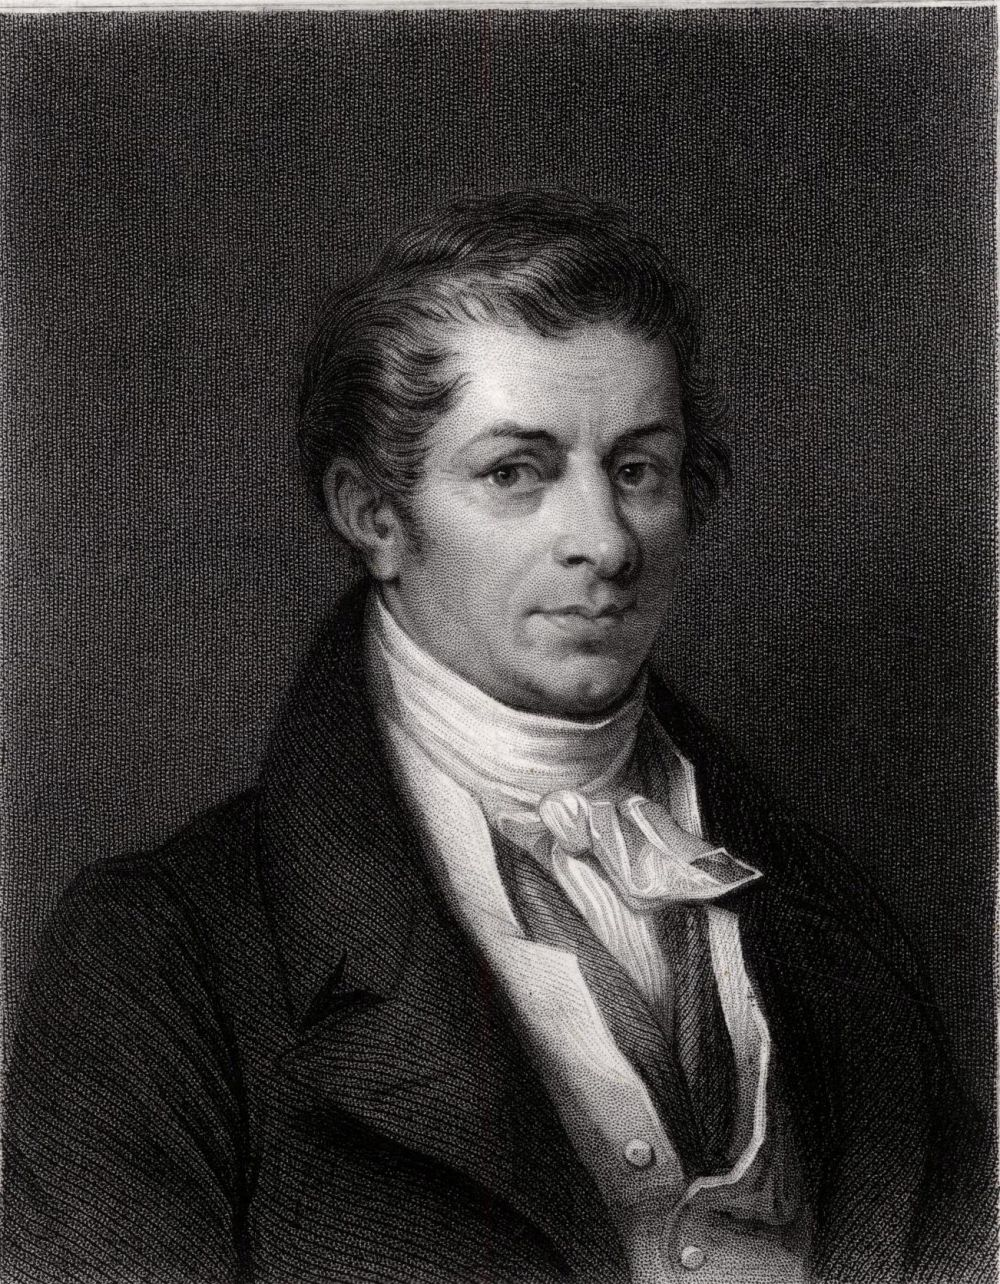 Jean Baptiste Say, French economist